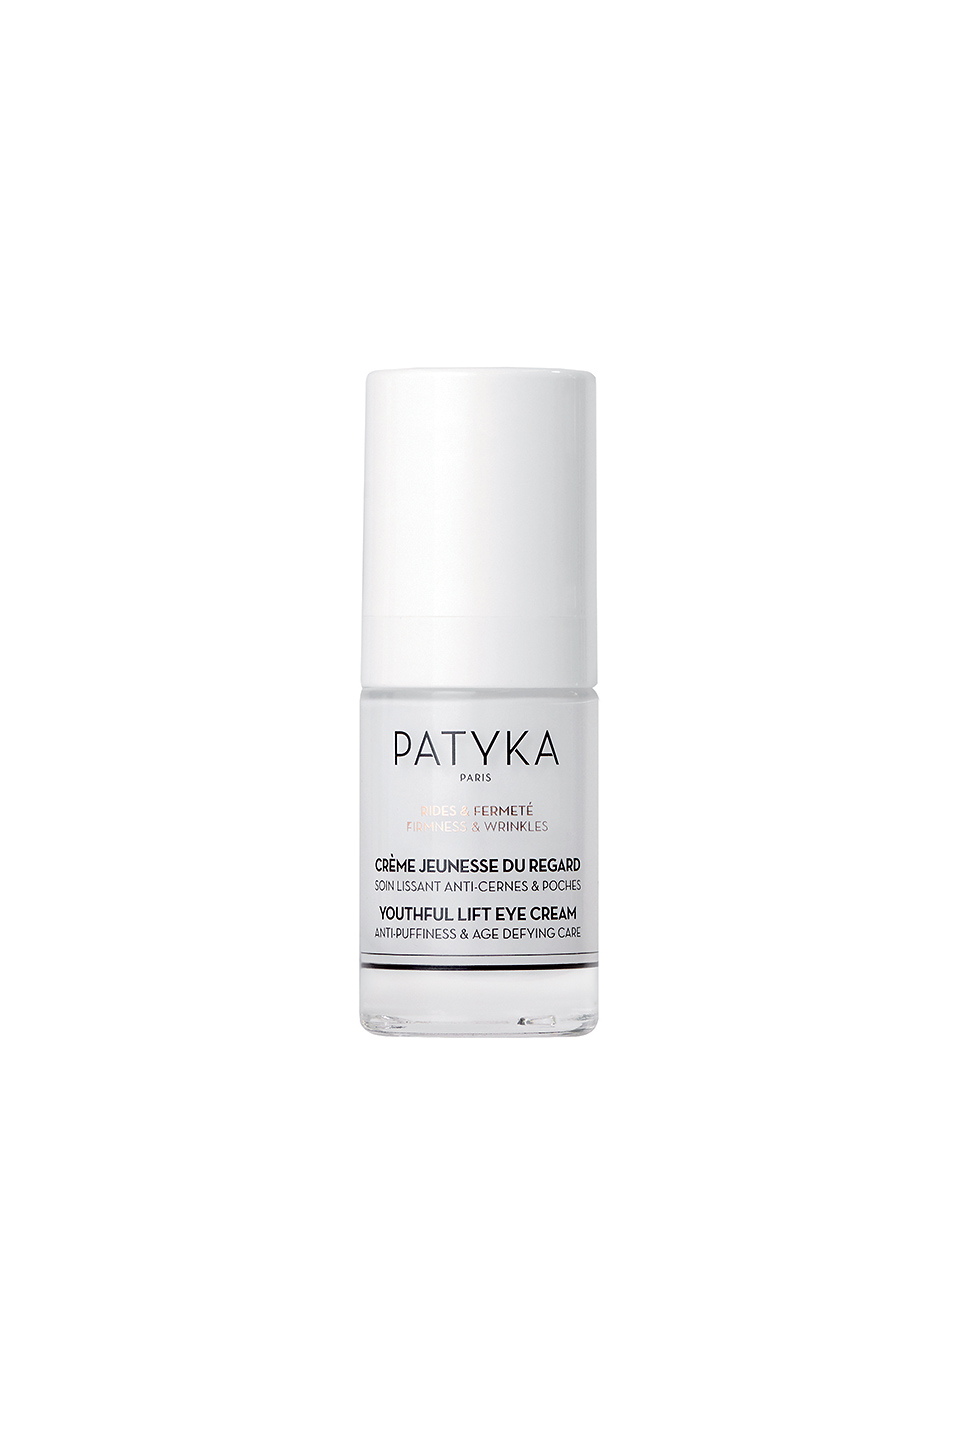 Patyka Youthful Lift Eye Cream in